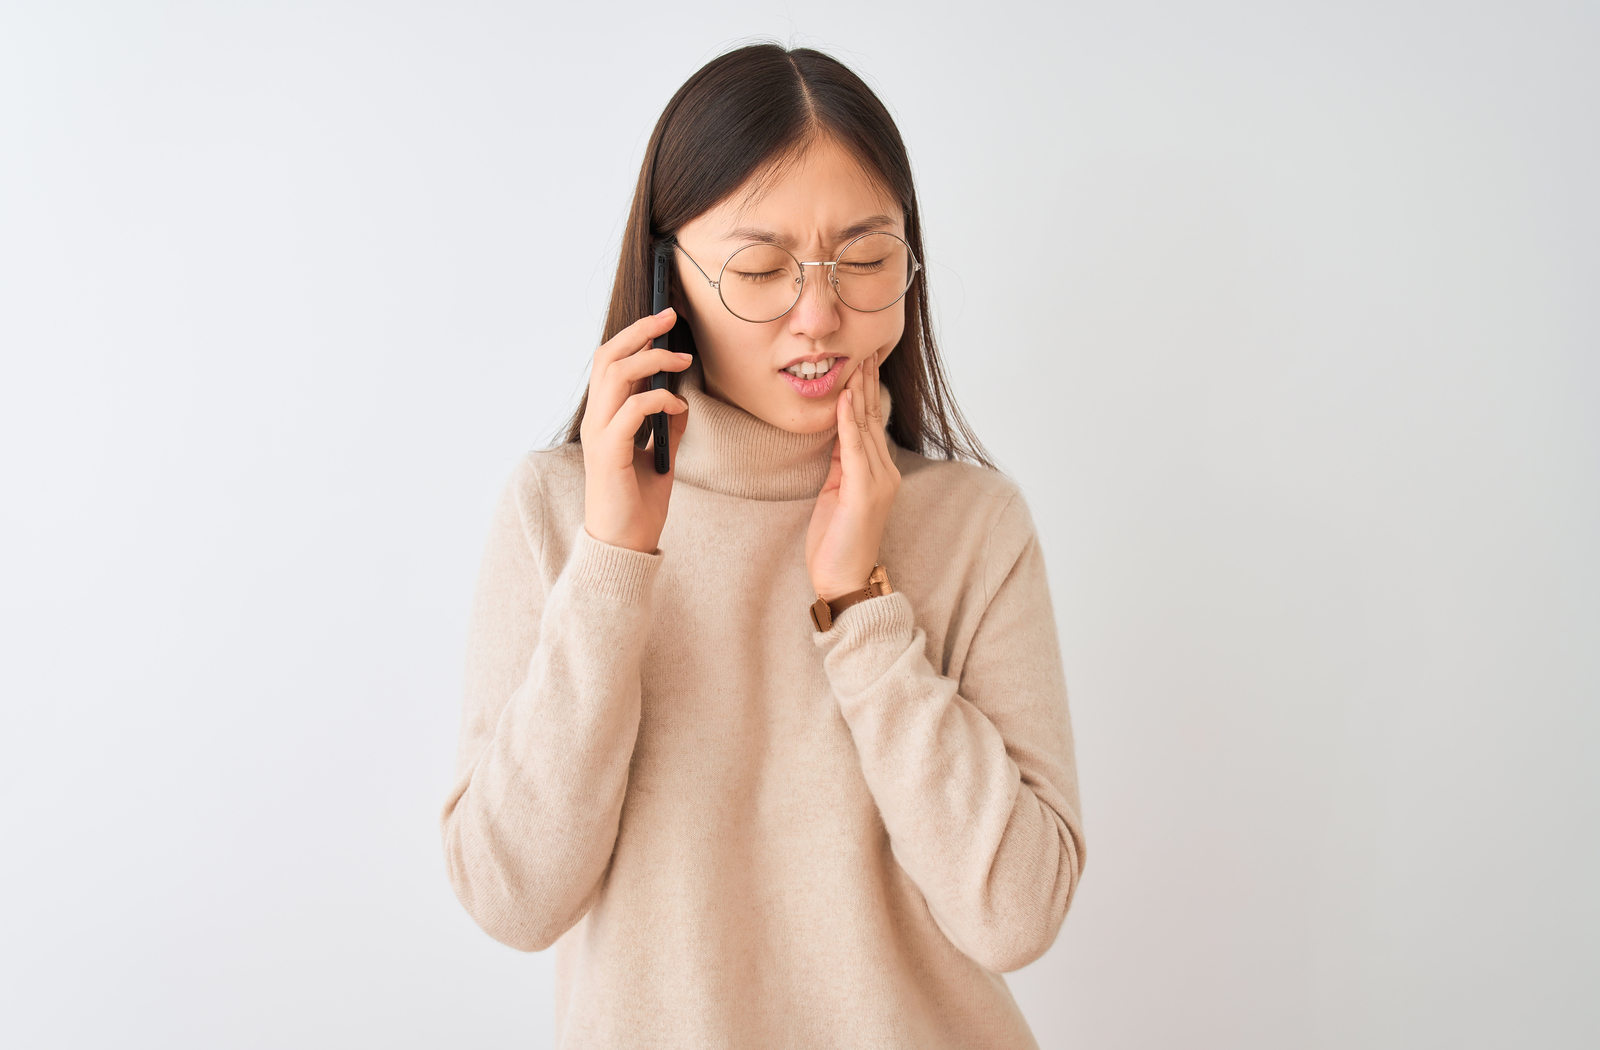 A Woman with a toothache on the phone calling to receive emergency dental care